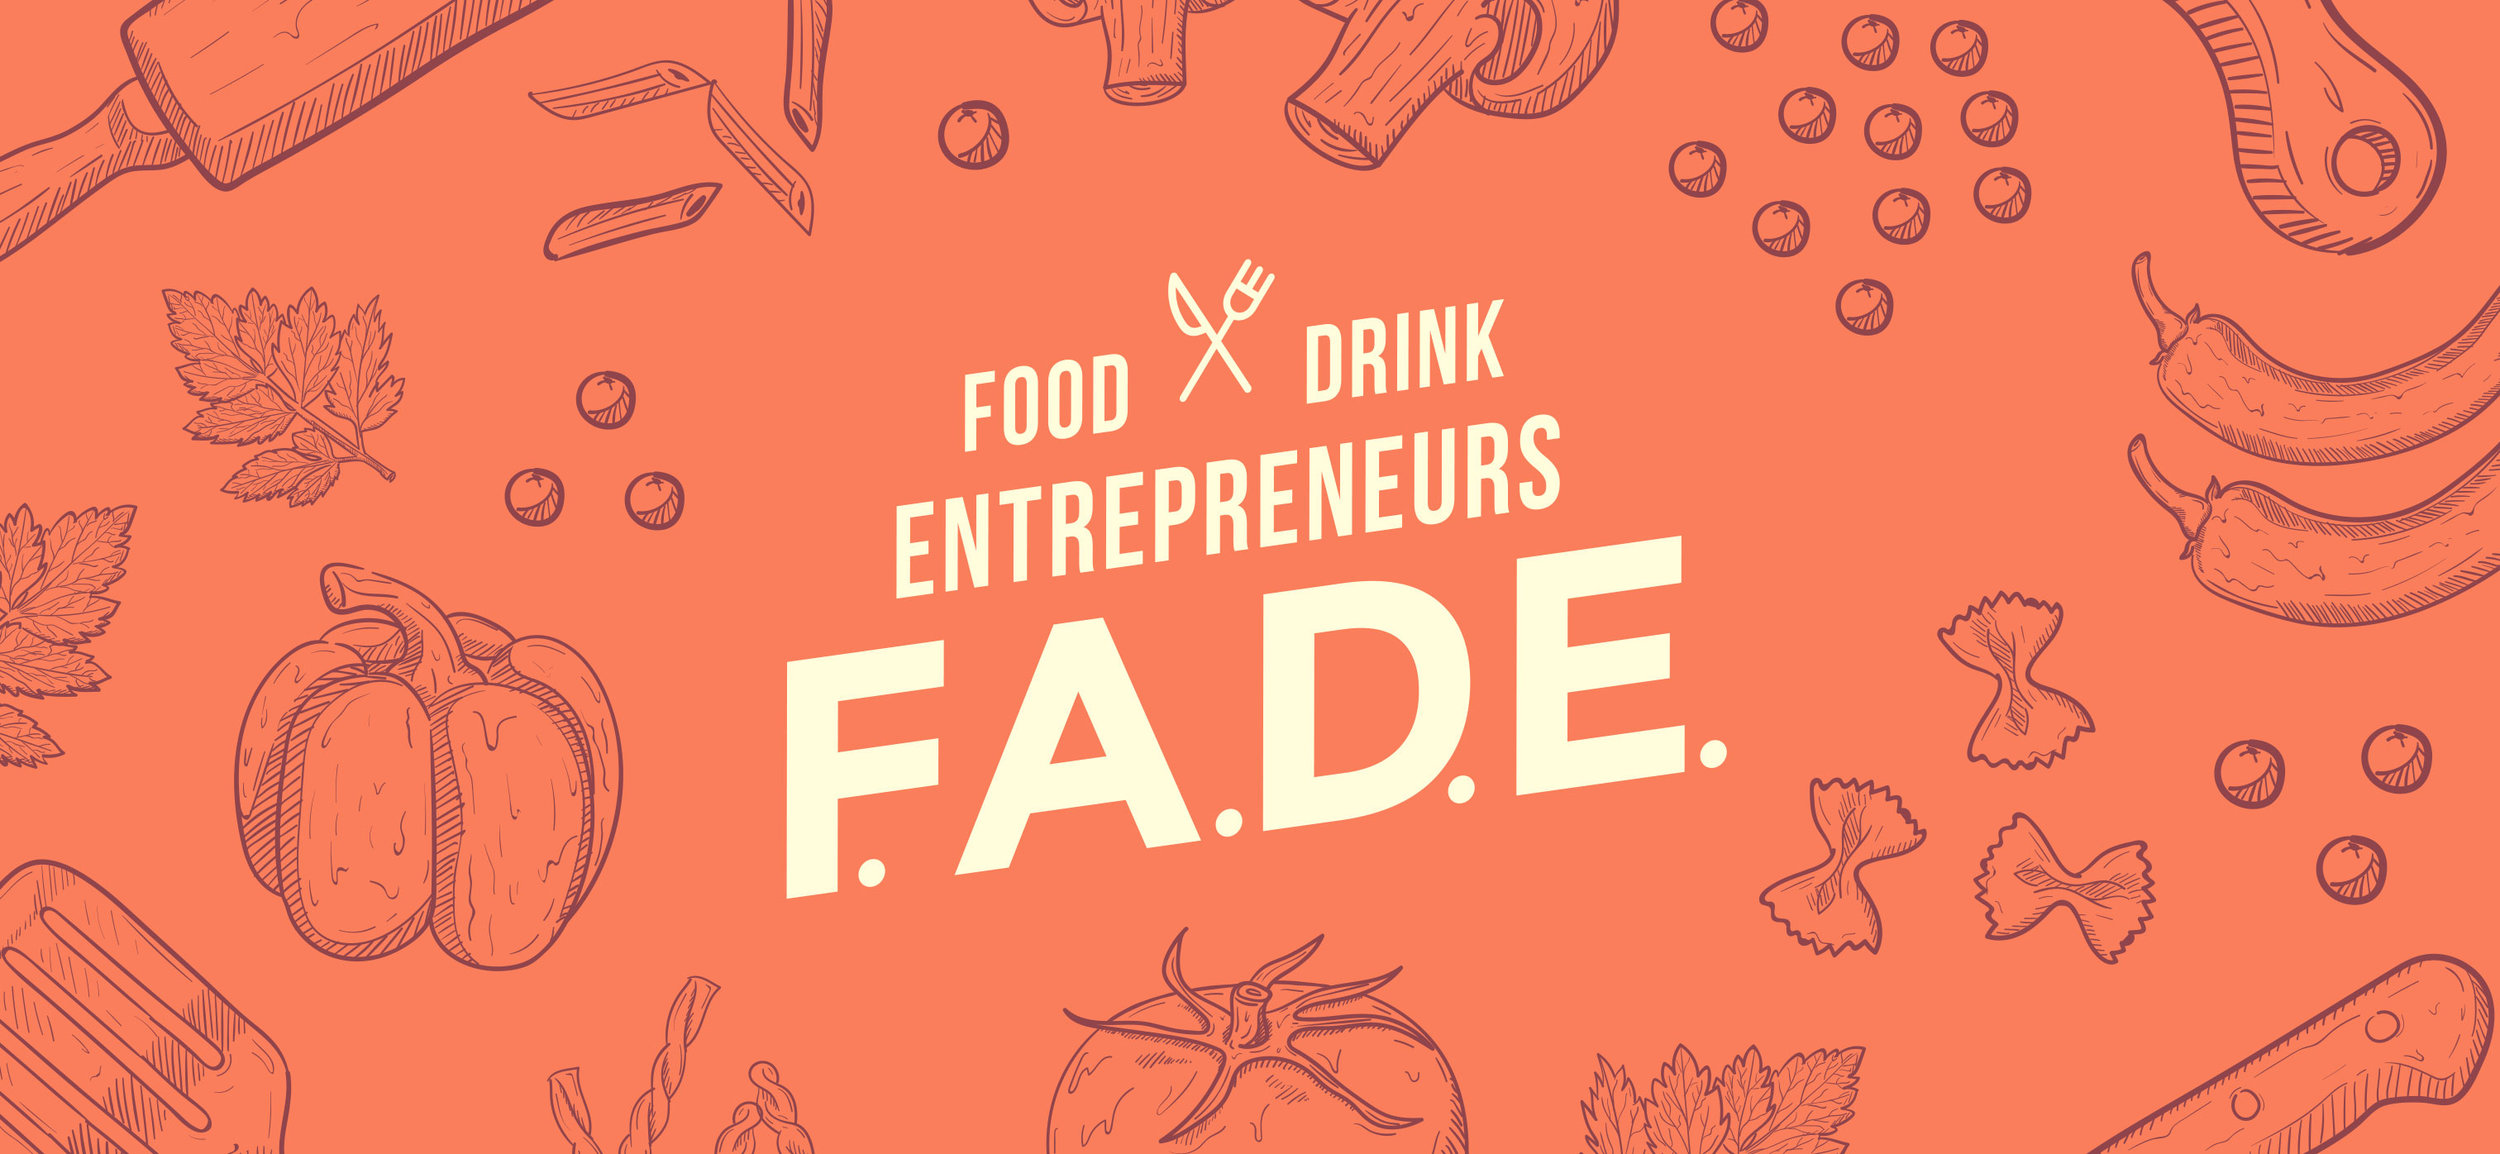 F.a.d.e Group - We've started the Facebook group 'Food And Drink Entrepreneurs (F.A.D.E.)' as a place for the community to develop their entrepreneurial ventures.— Are you a food & drink entrepreneur? If yes, then join the group and participate in the conversation!